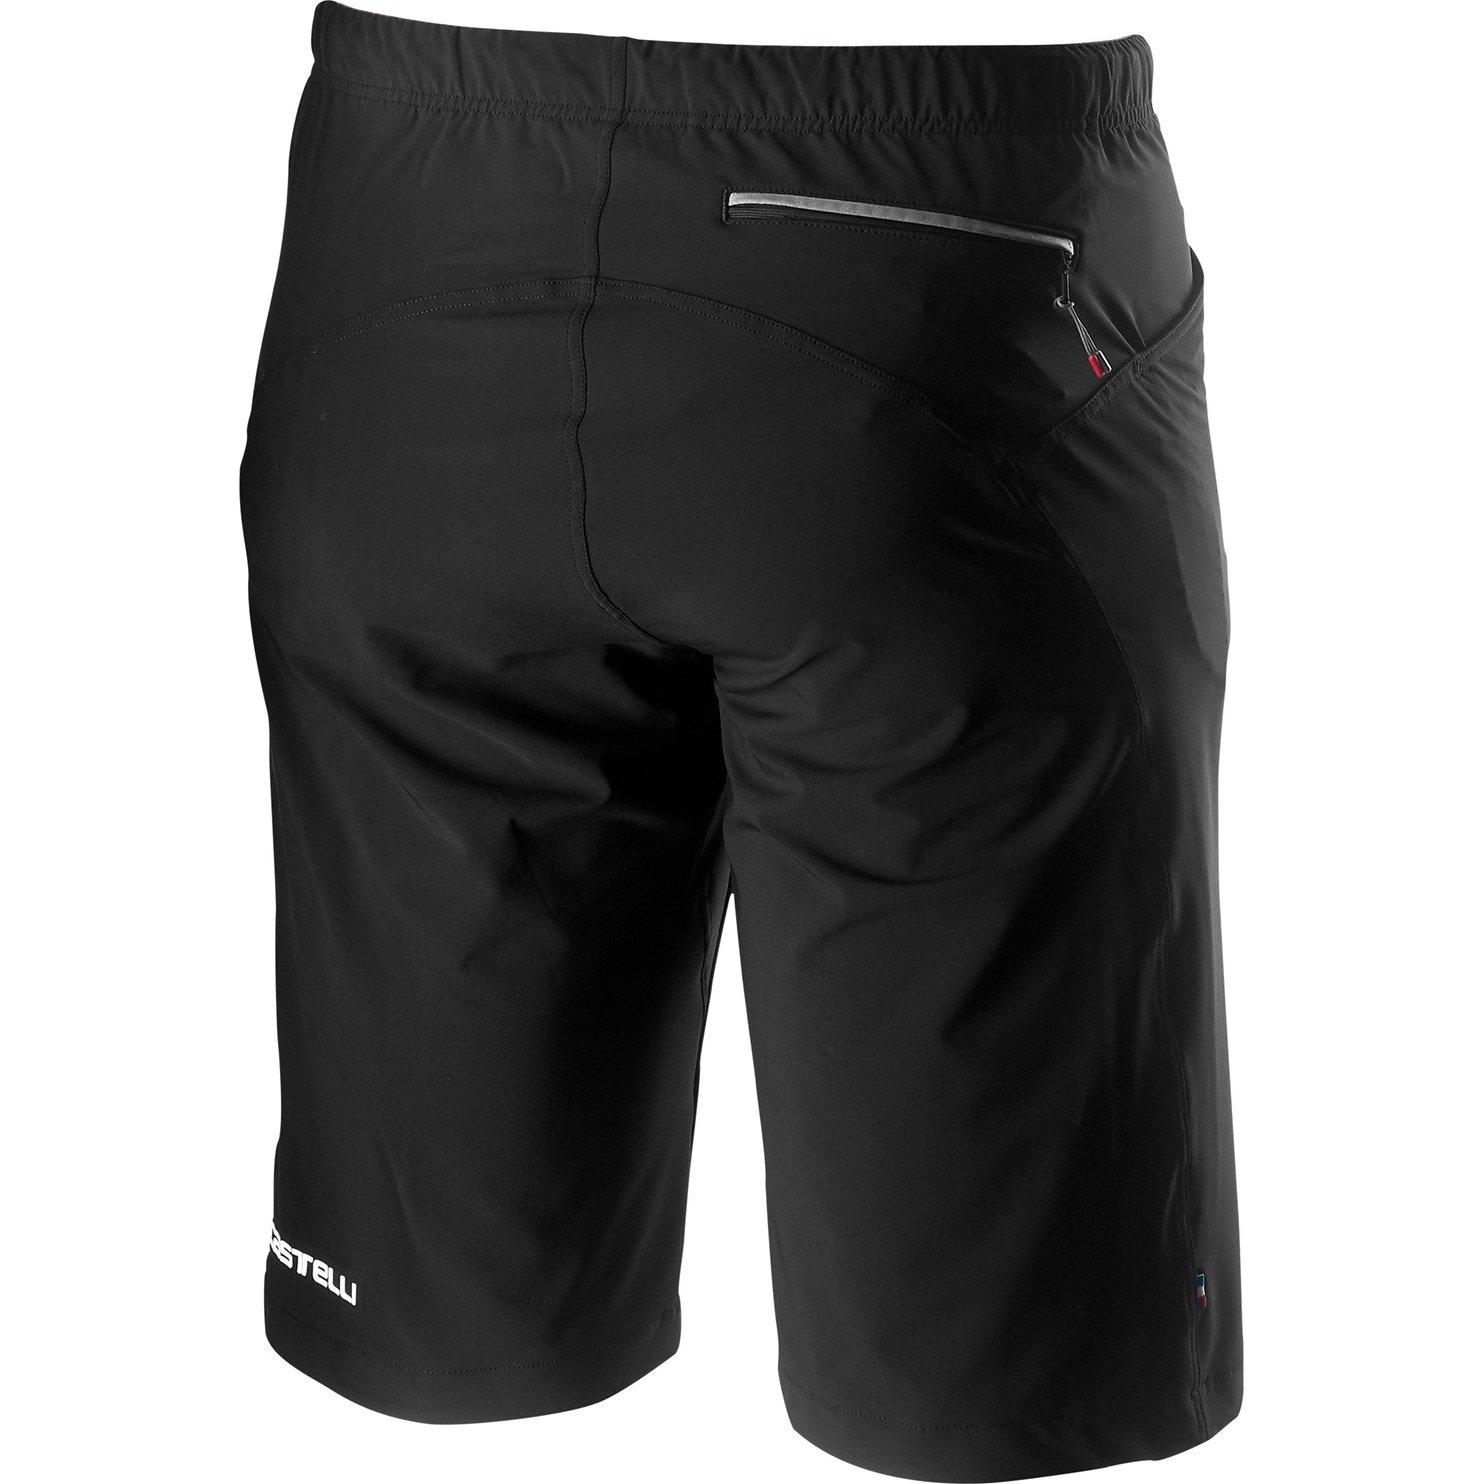 Castelli-Castelli Unlimited Baggy Short--saddleback-elite-performance-cycling